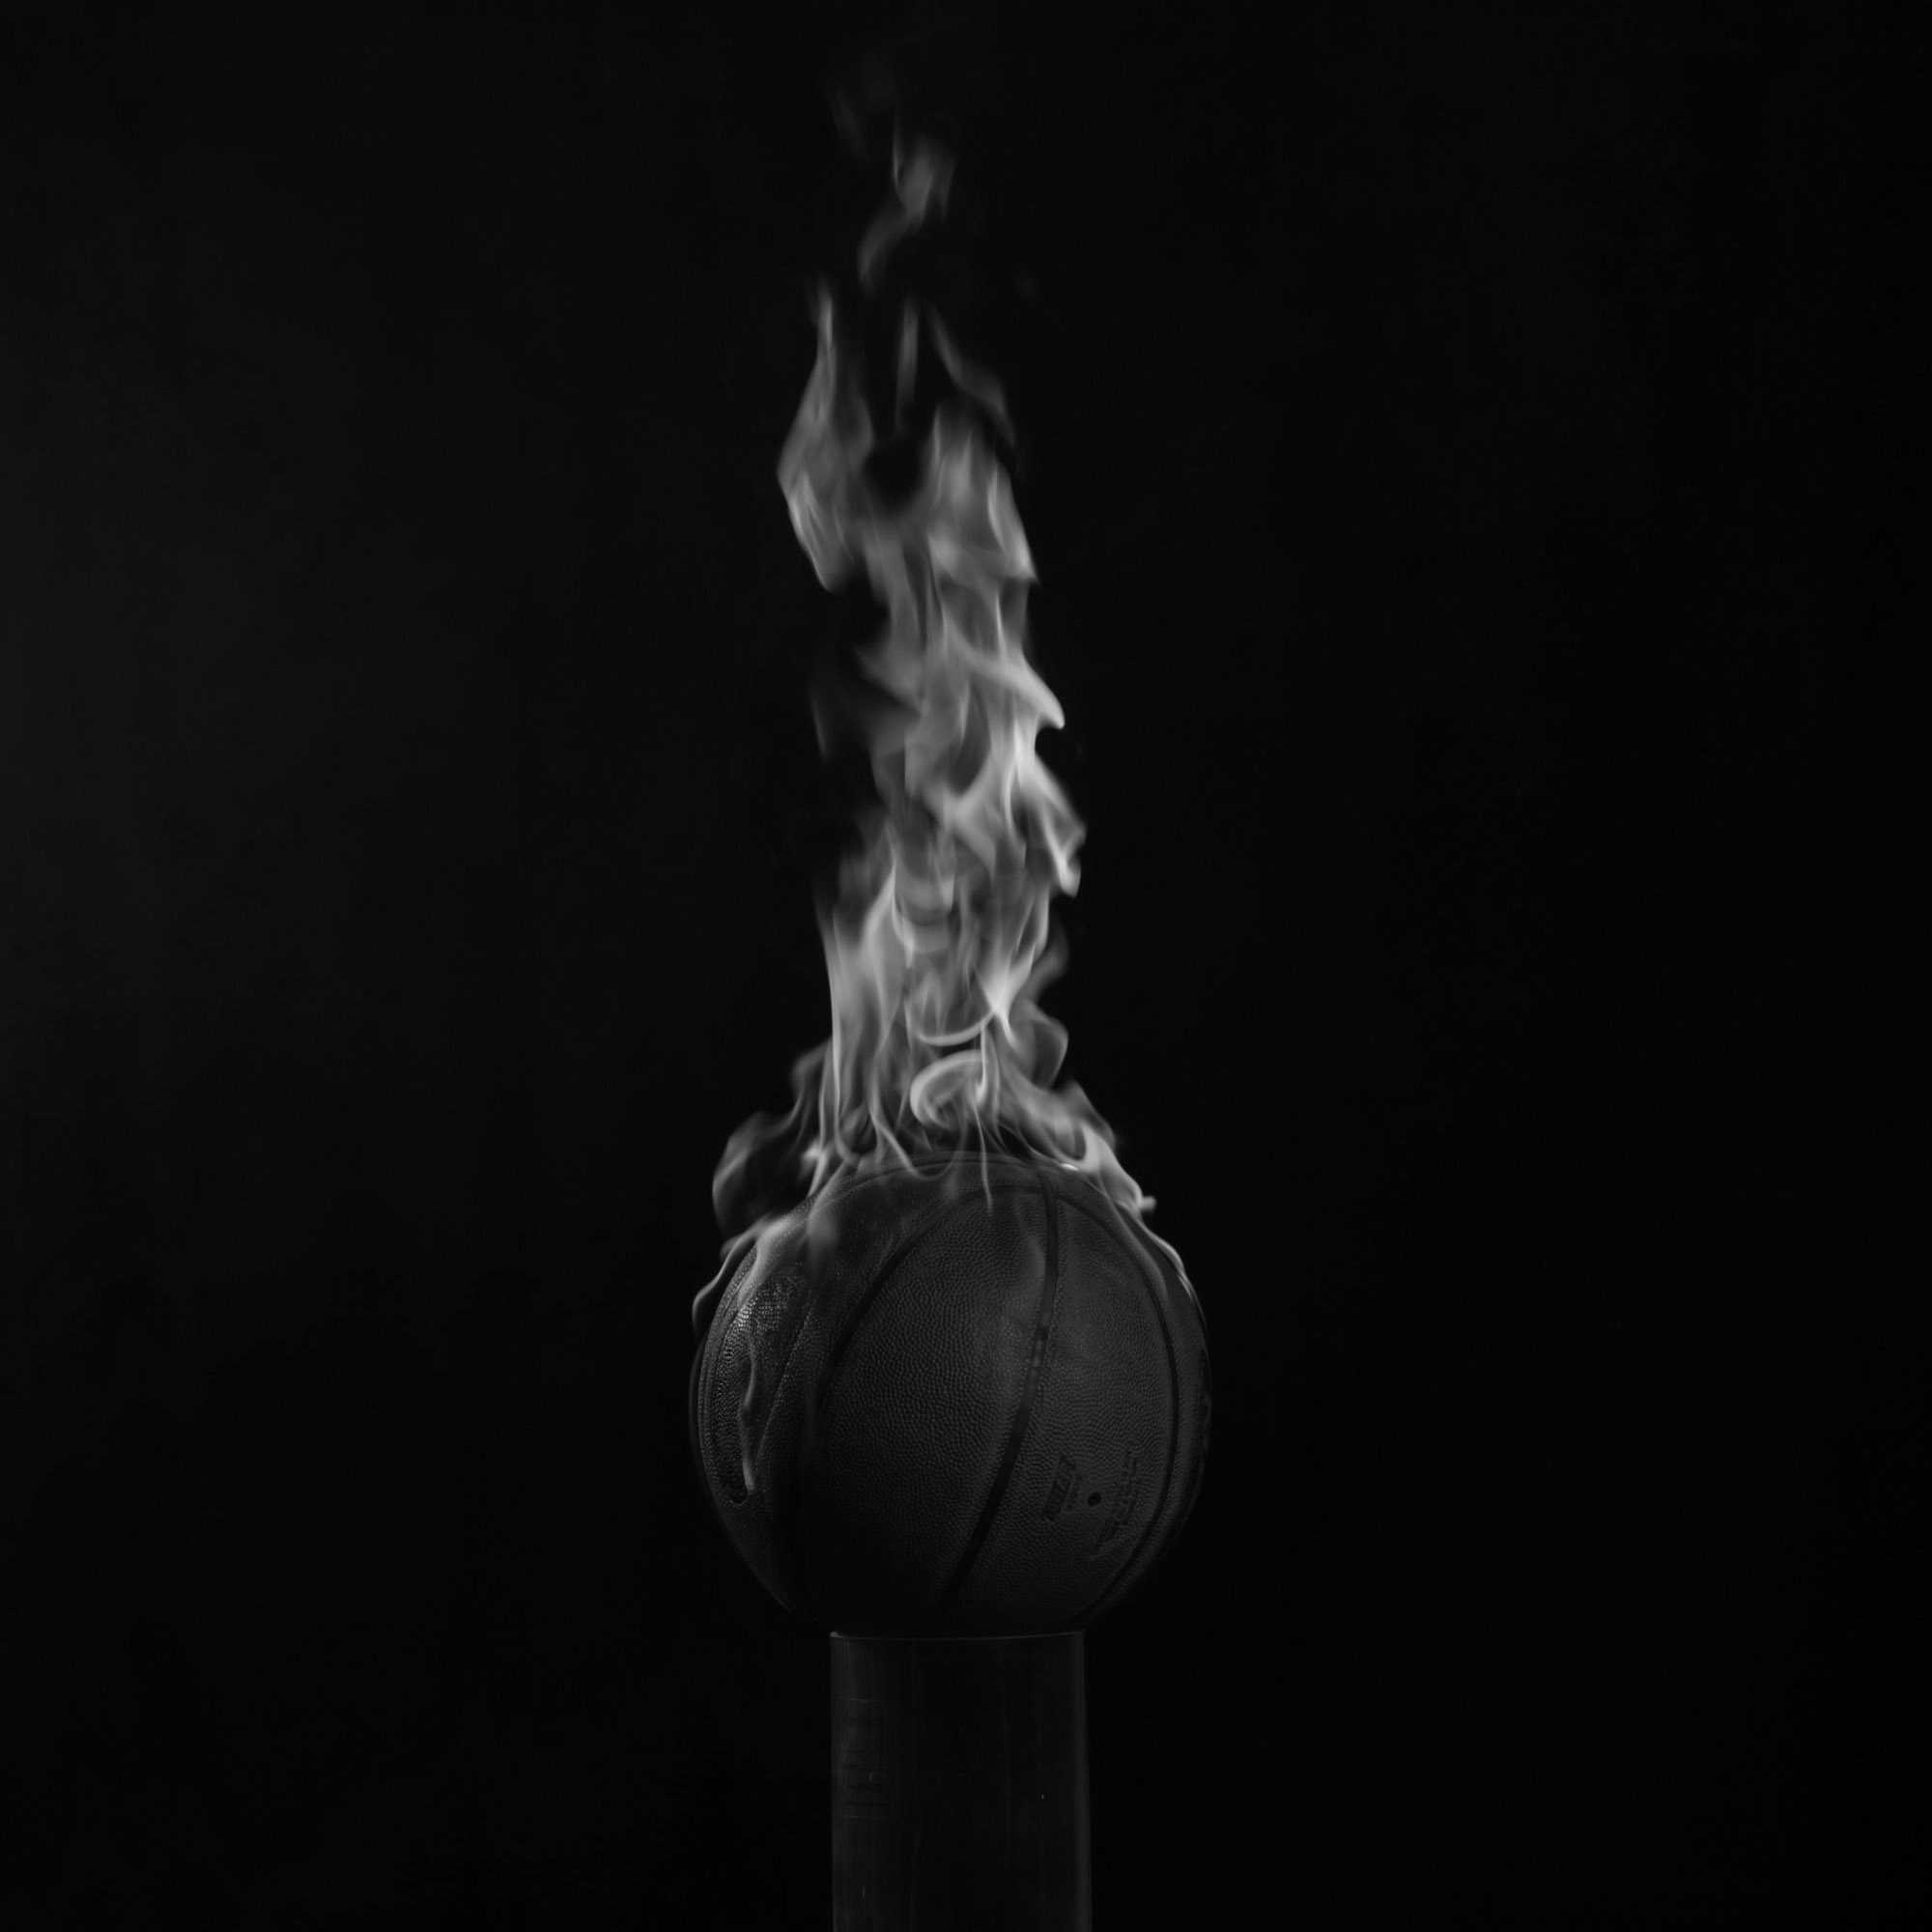 Photo 2  / Photograph of the basketball after we fist set it ablaze.